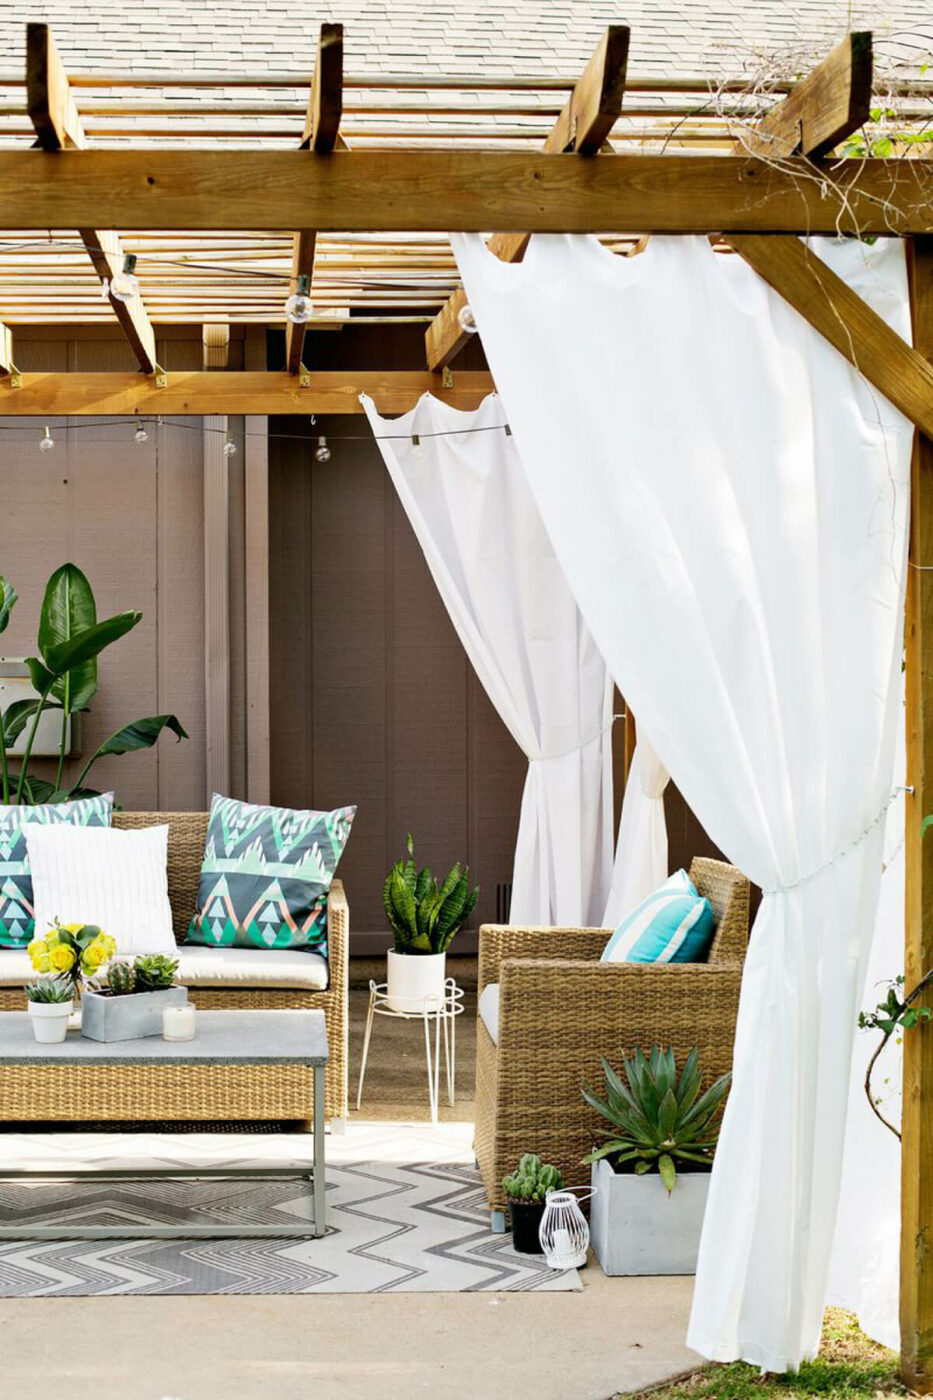 Outdoor Decor: 13 Amazing Curtain Ideas for Porch and Patios